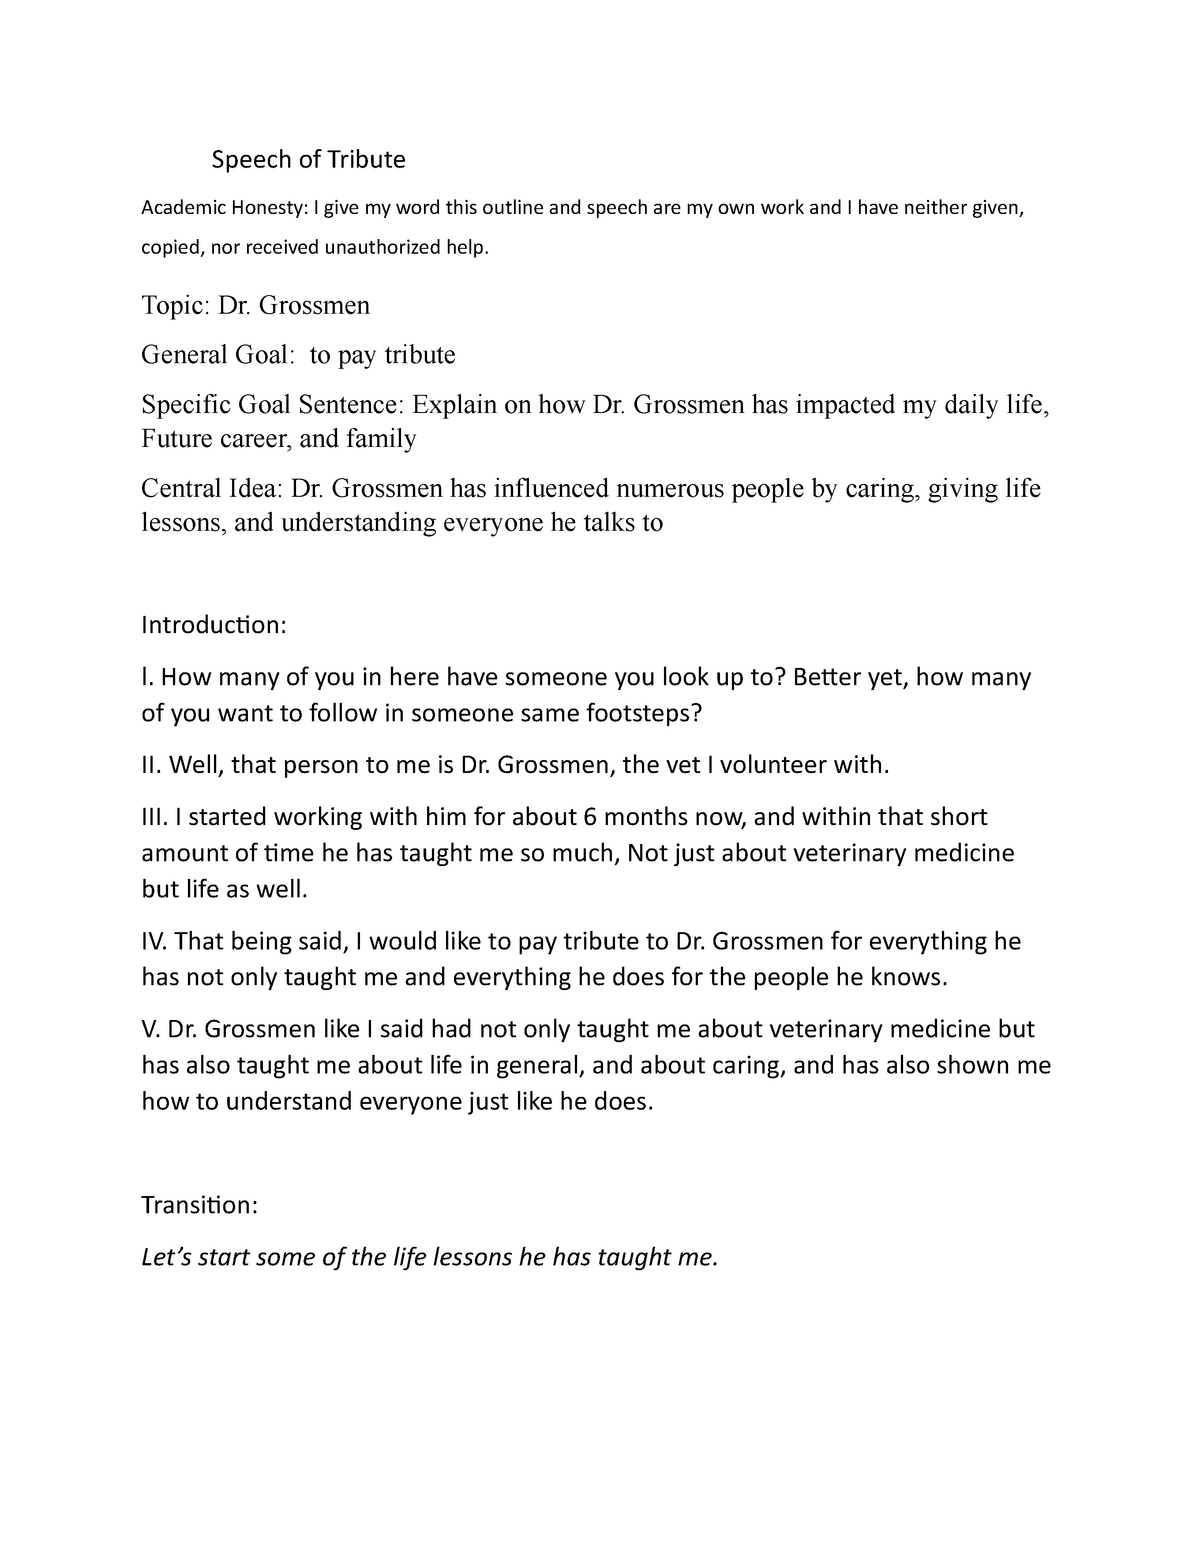 Tribute speech - Outline - Speech of Tribute Academic Honesty: I With Regard To Speech Outline Template Word